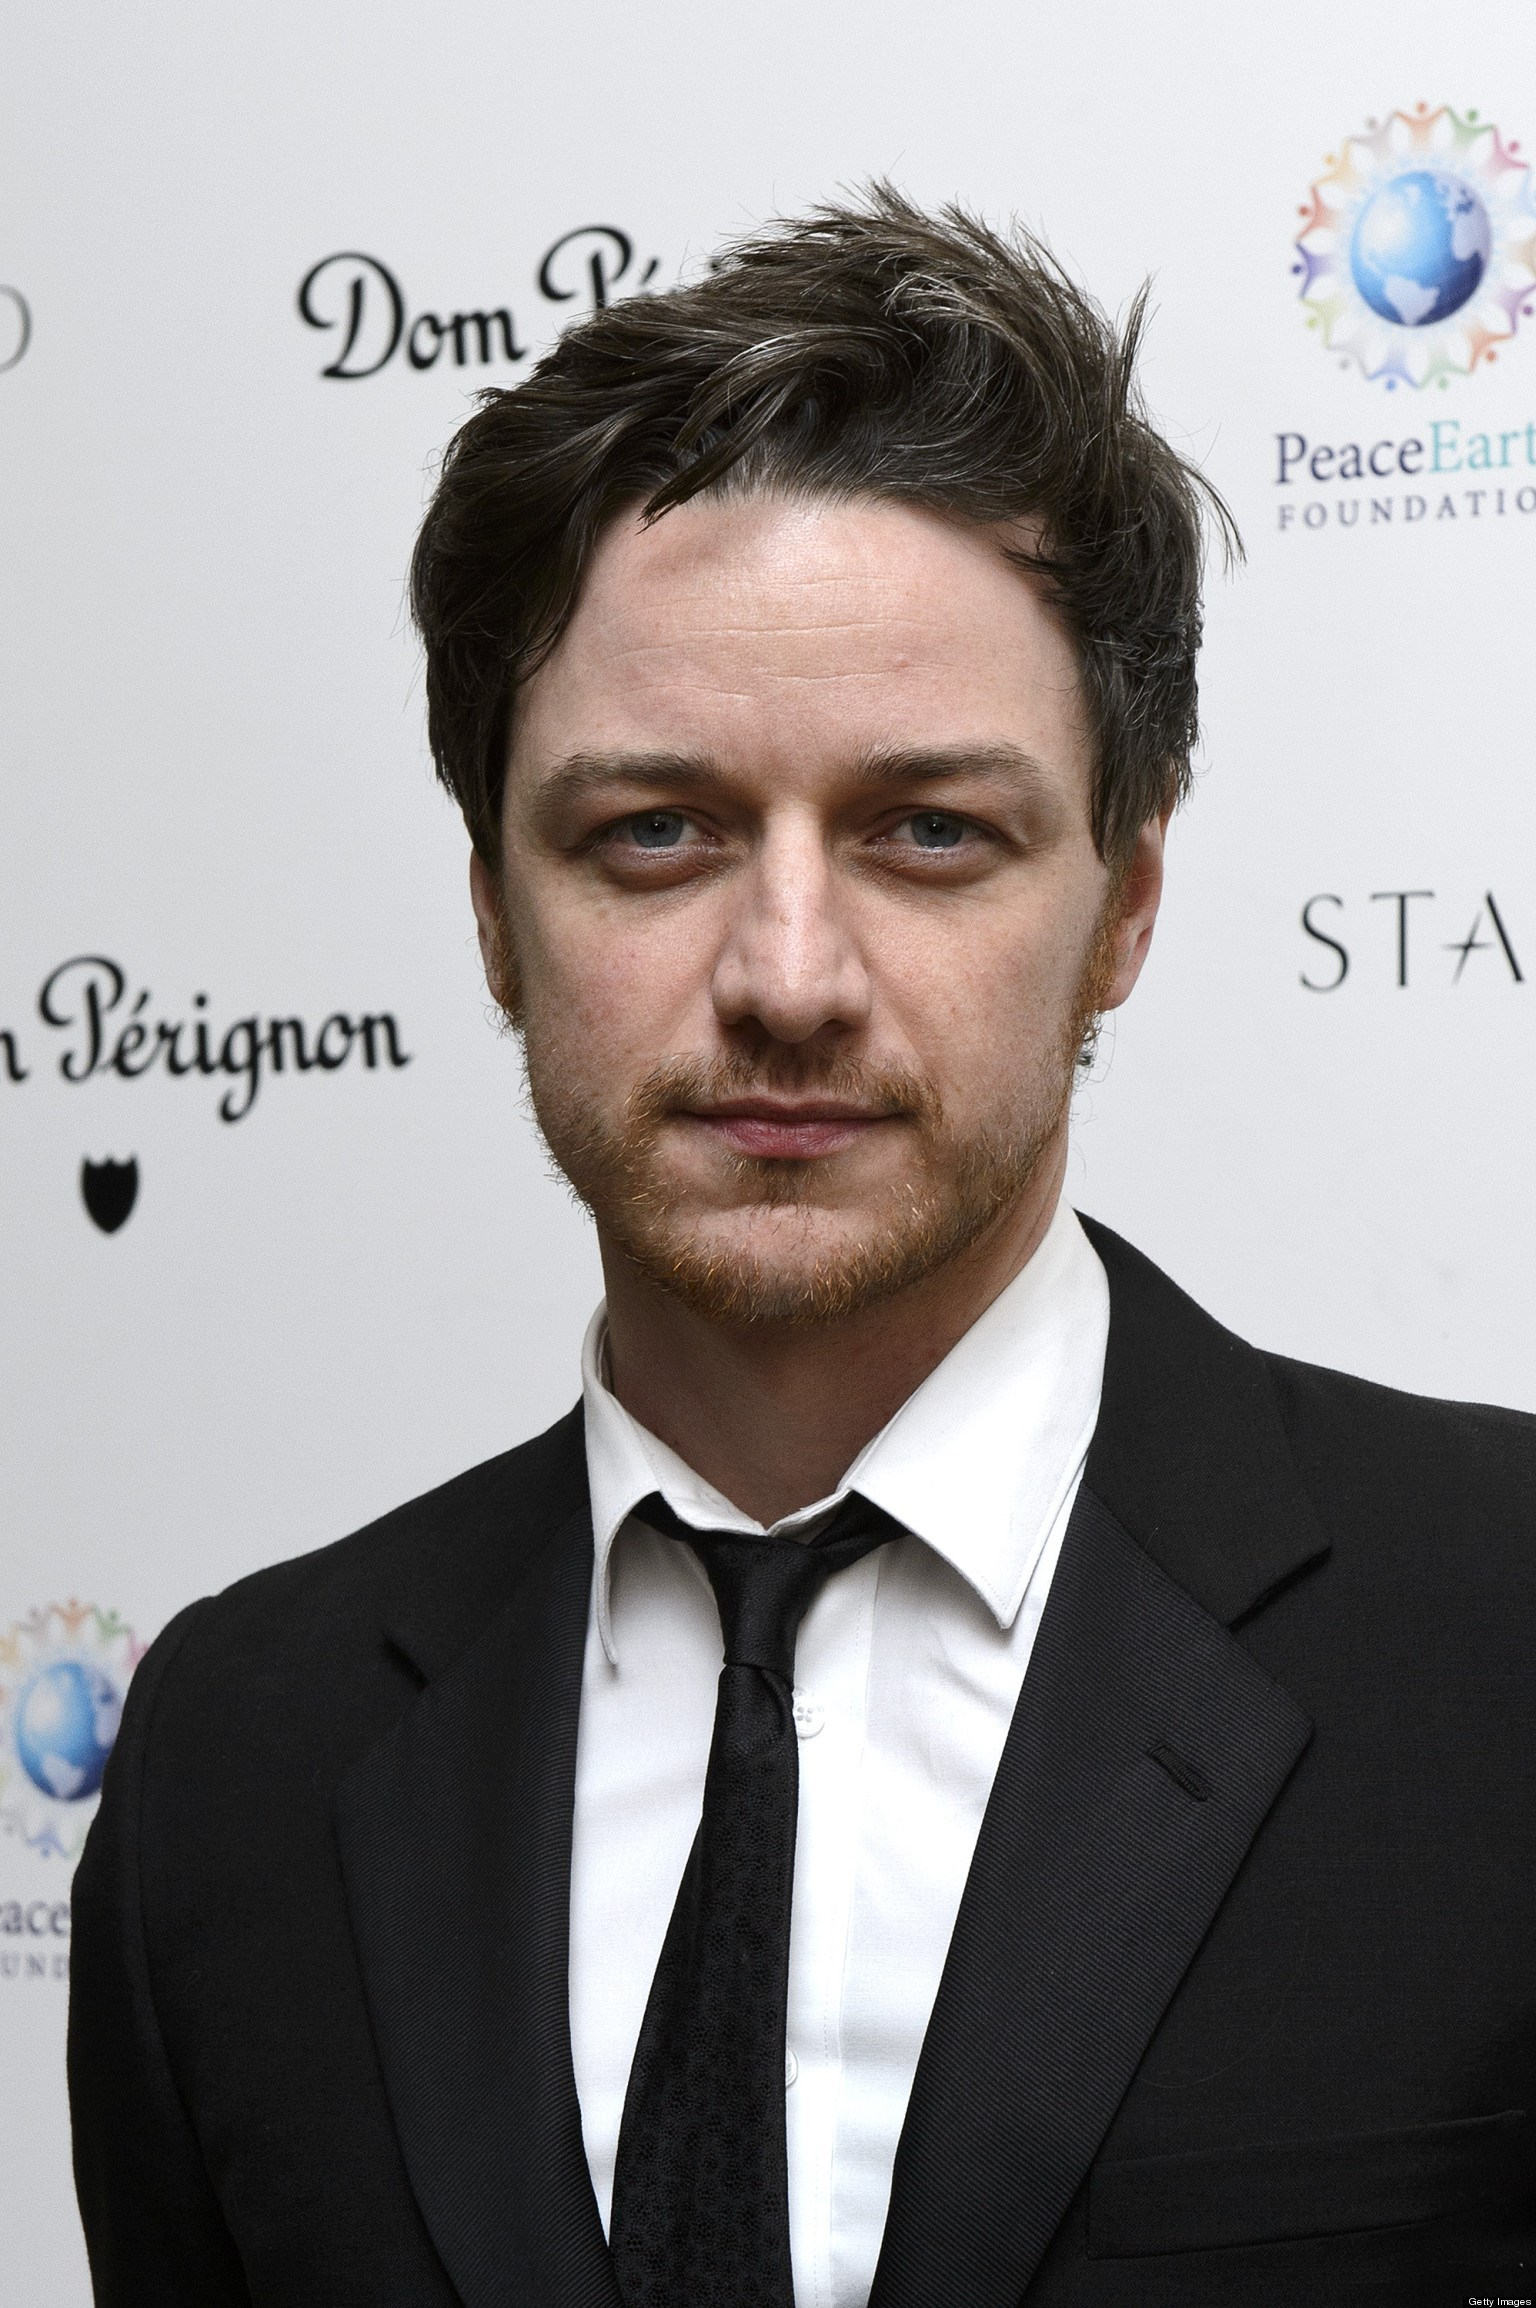 James Mcavoy Known People Famous People News And